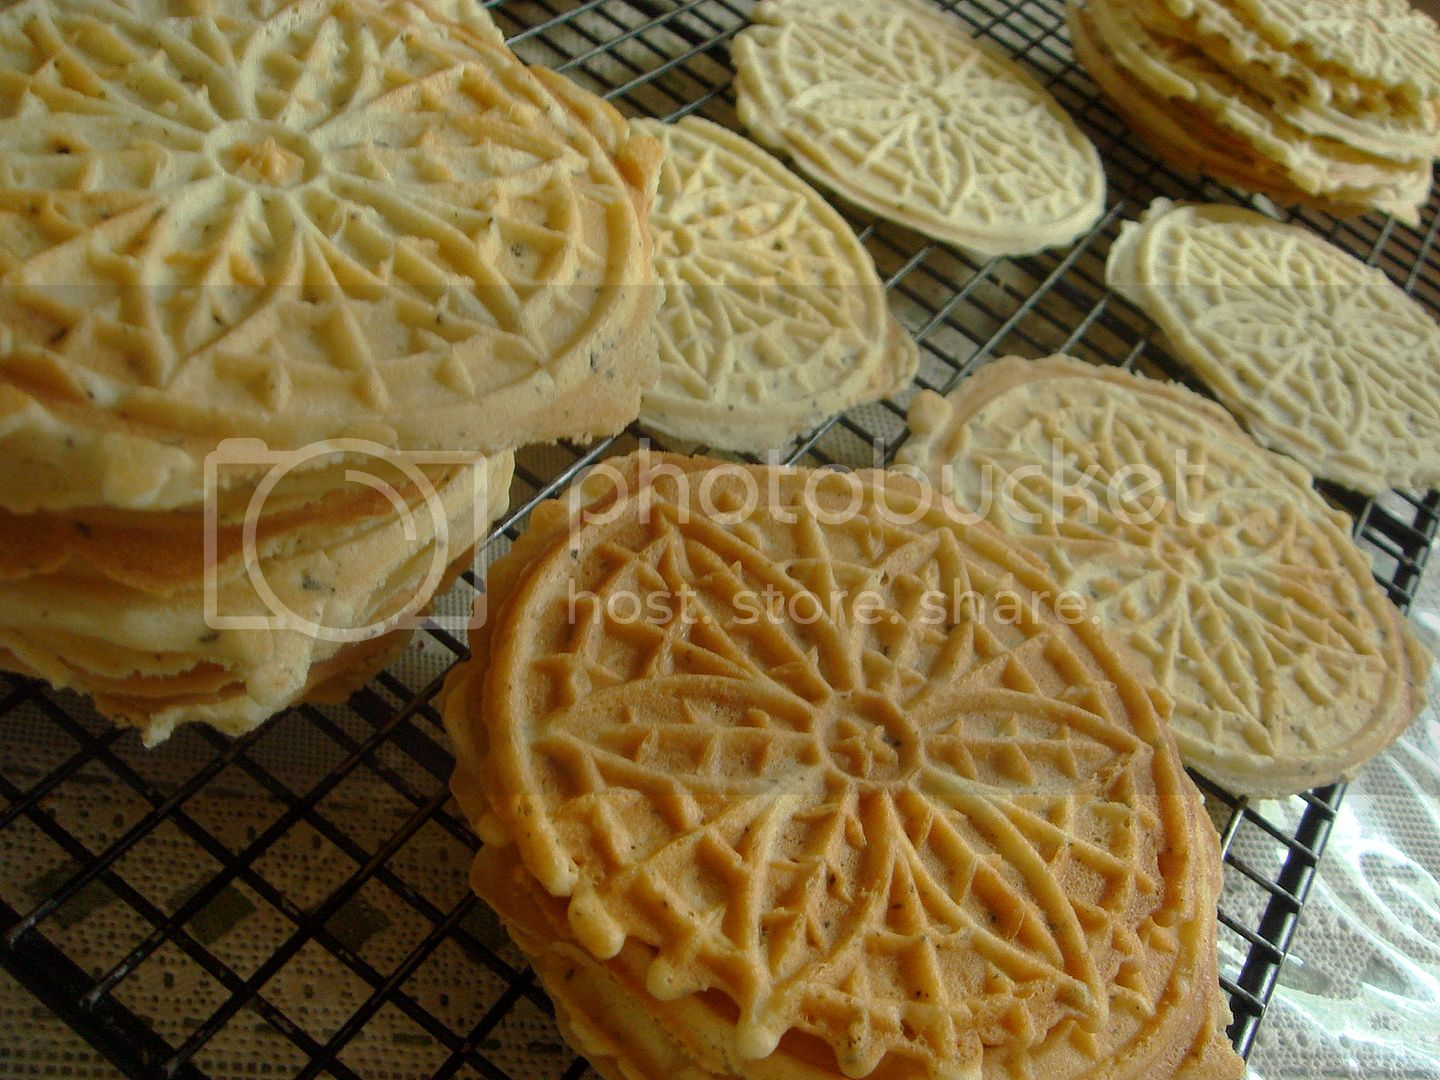 yummy pizzelles